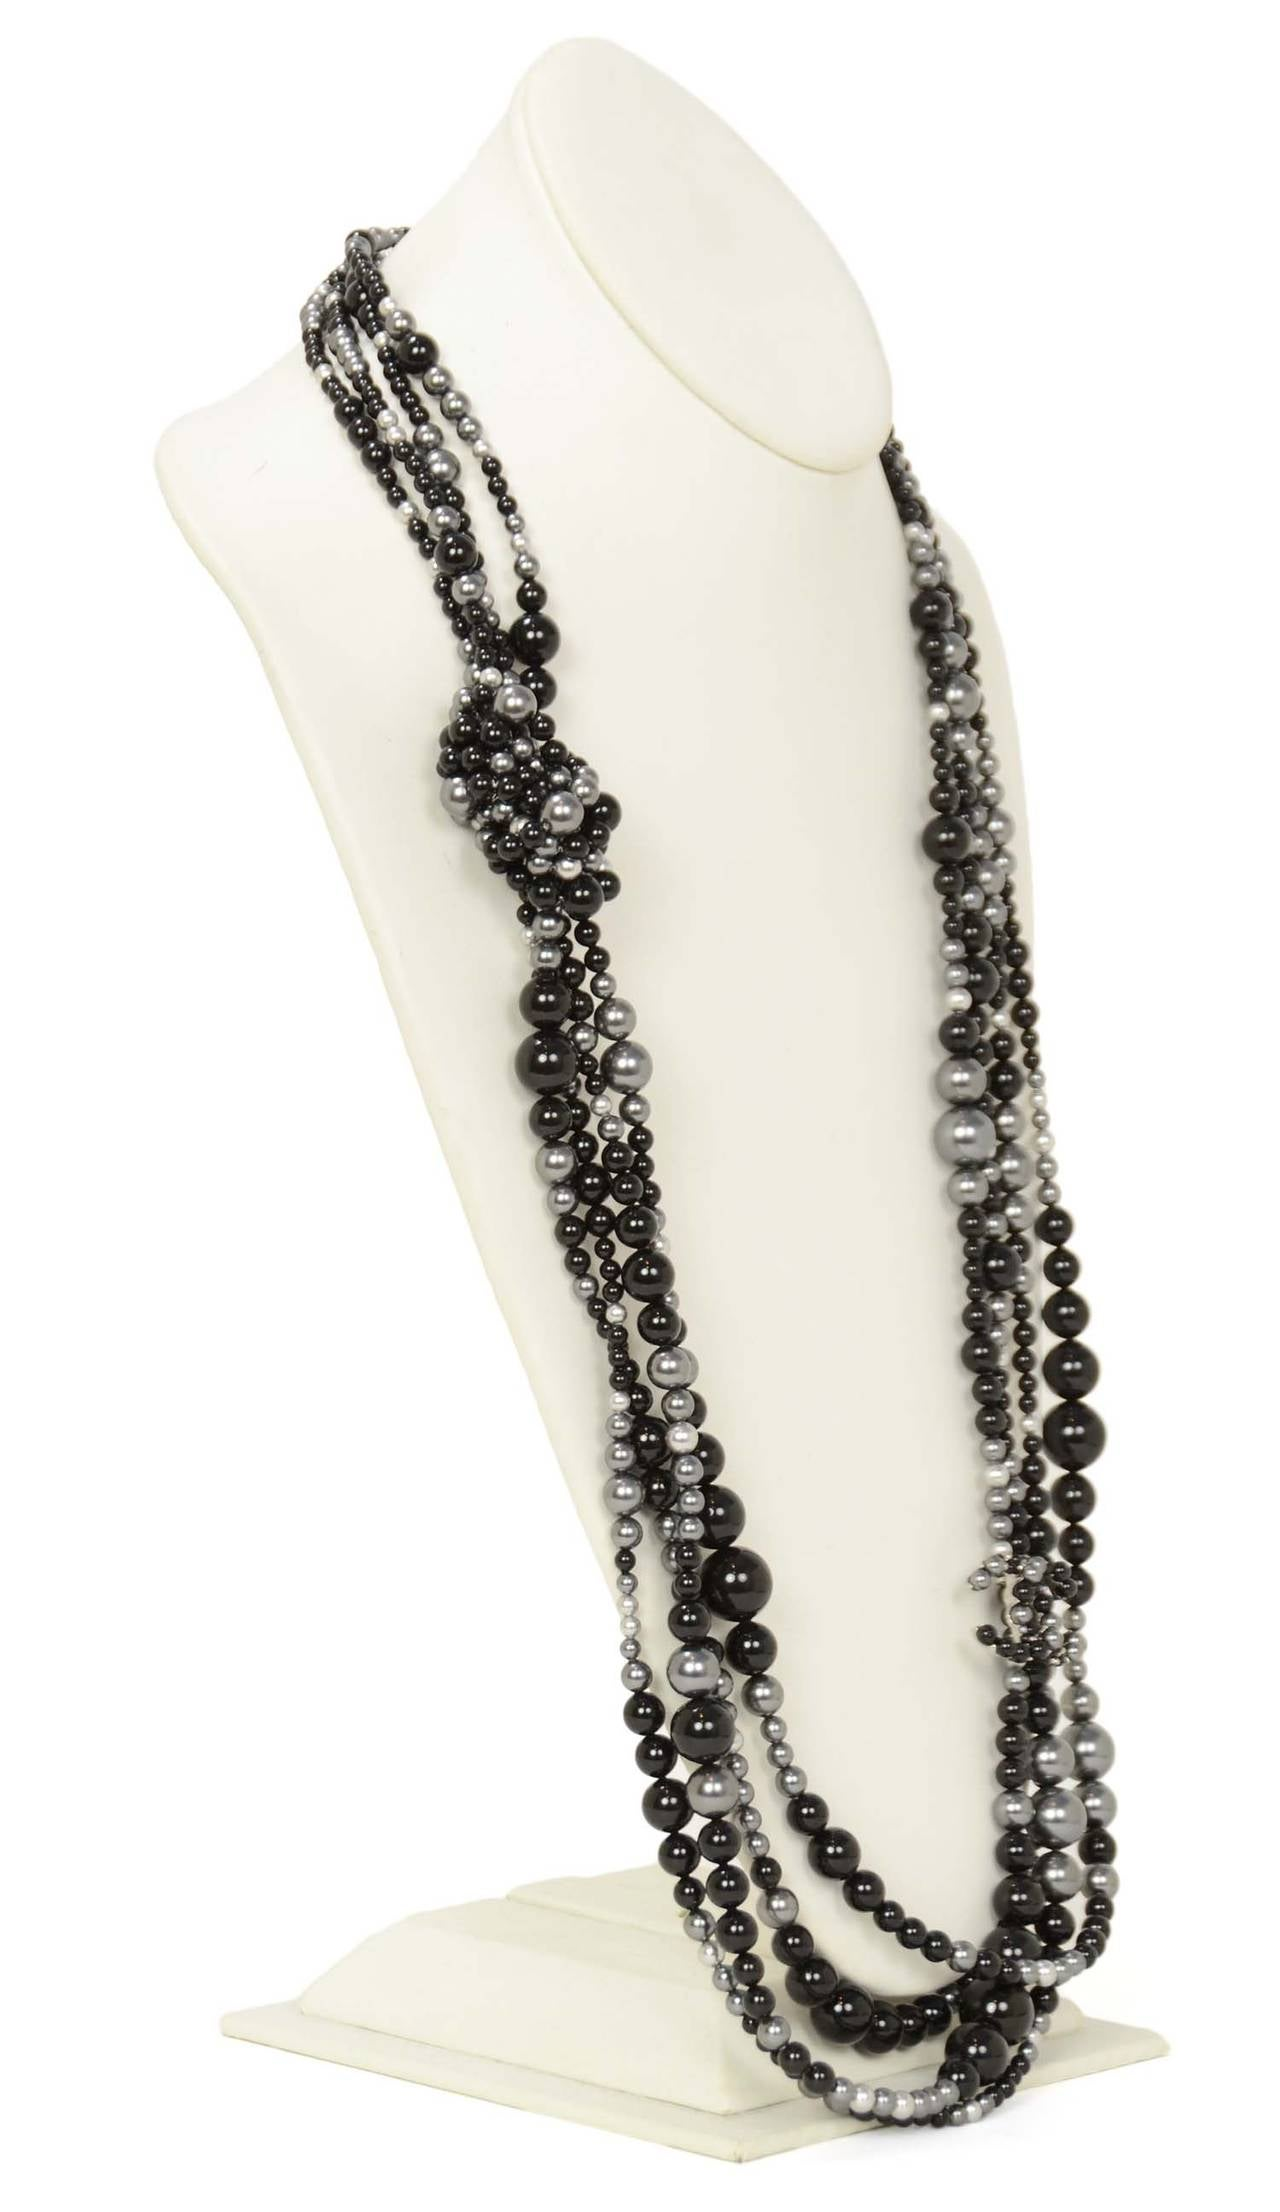 CHANEL 2014 Black & Grey Multi-Strand faux Pearl CC Necklace rt. $3,000 2